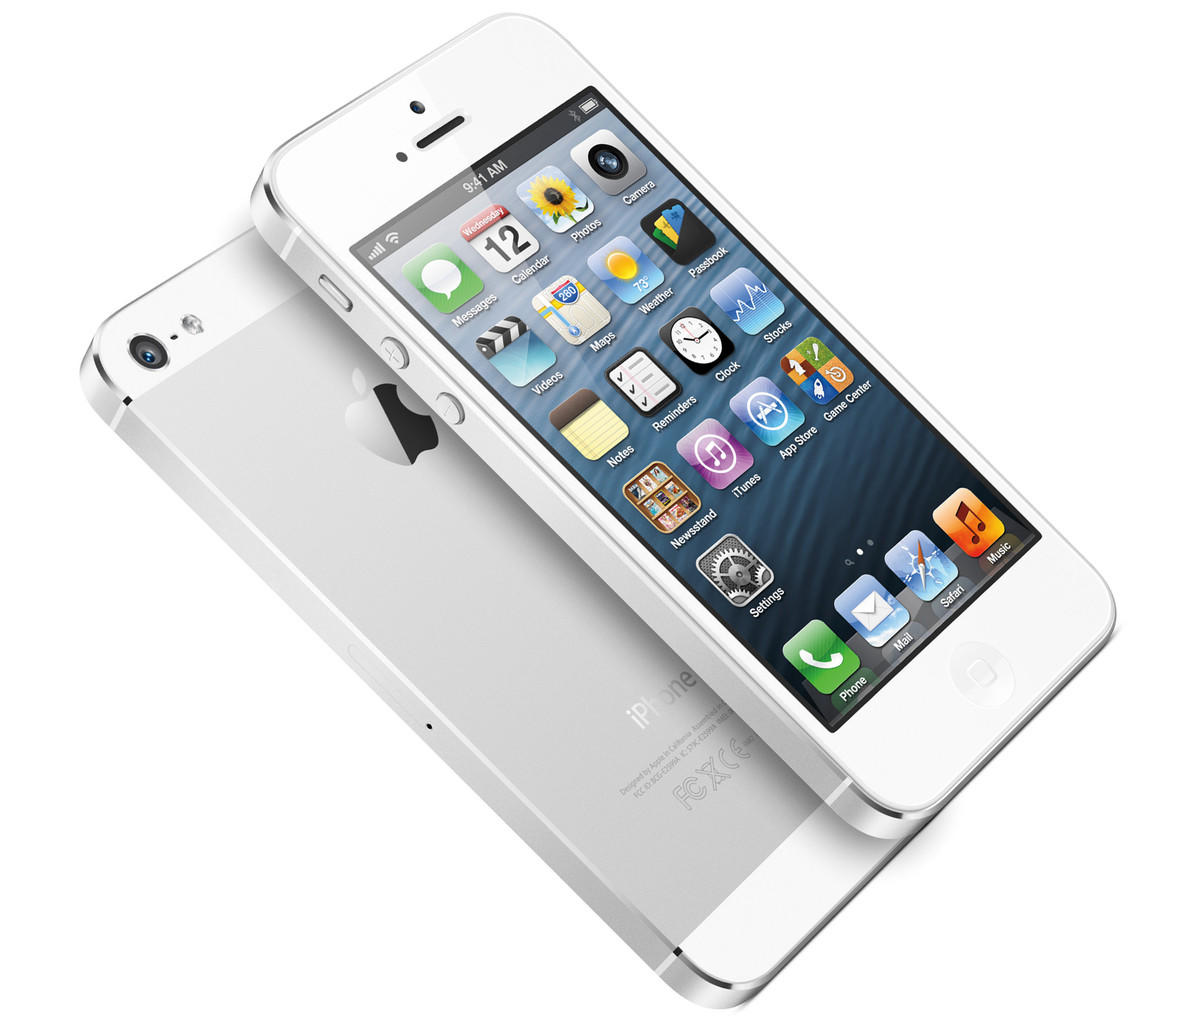 iphone5 iphone5 16gb white BNIB